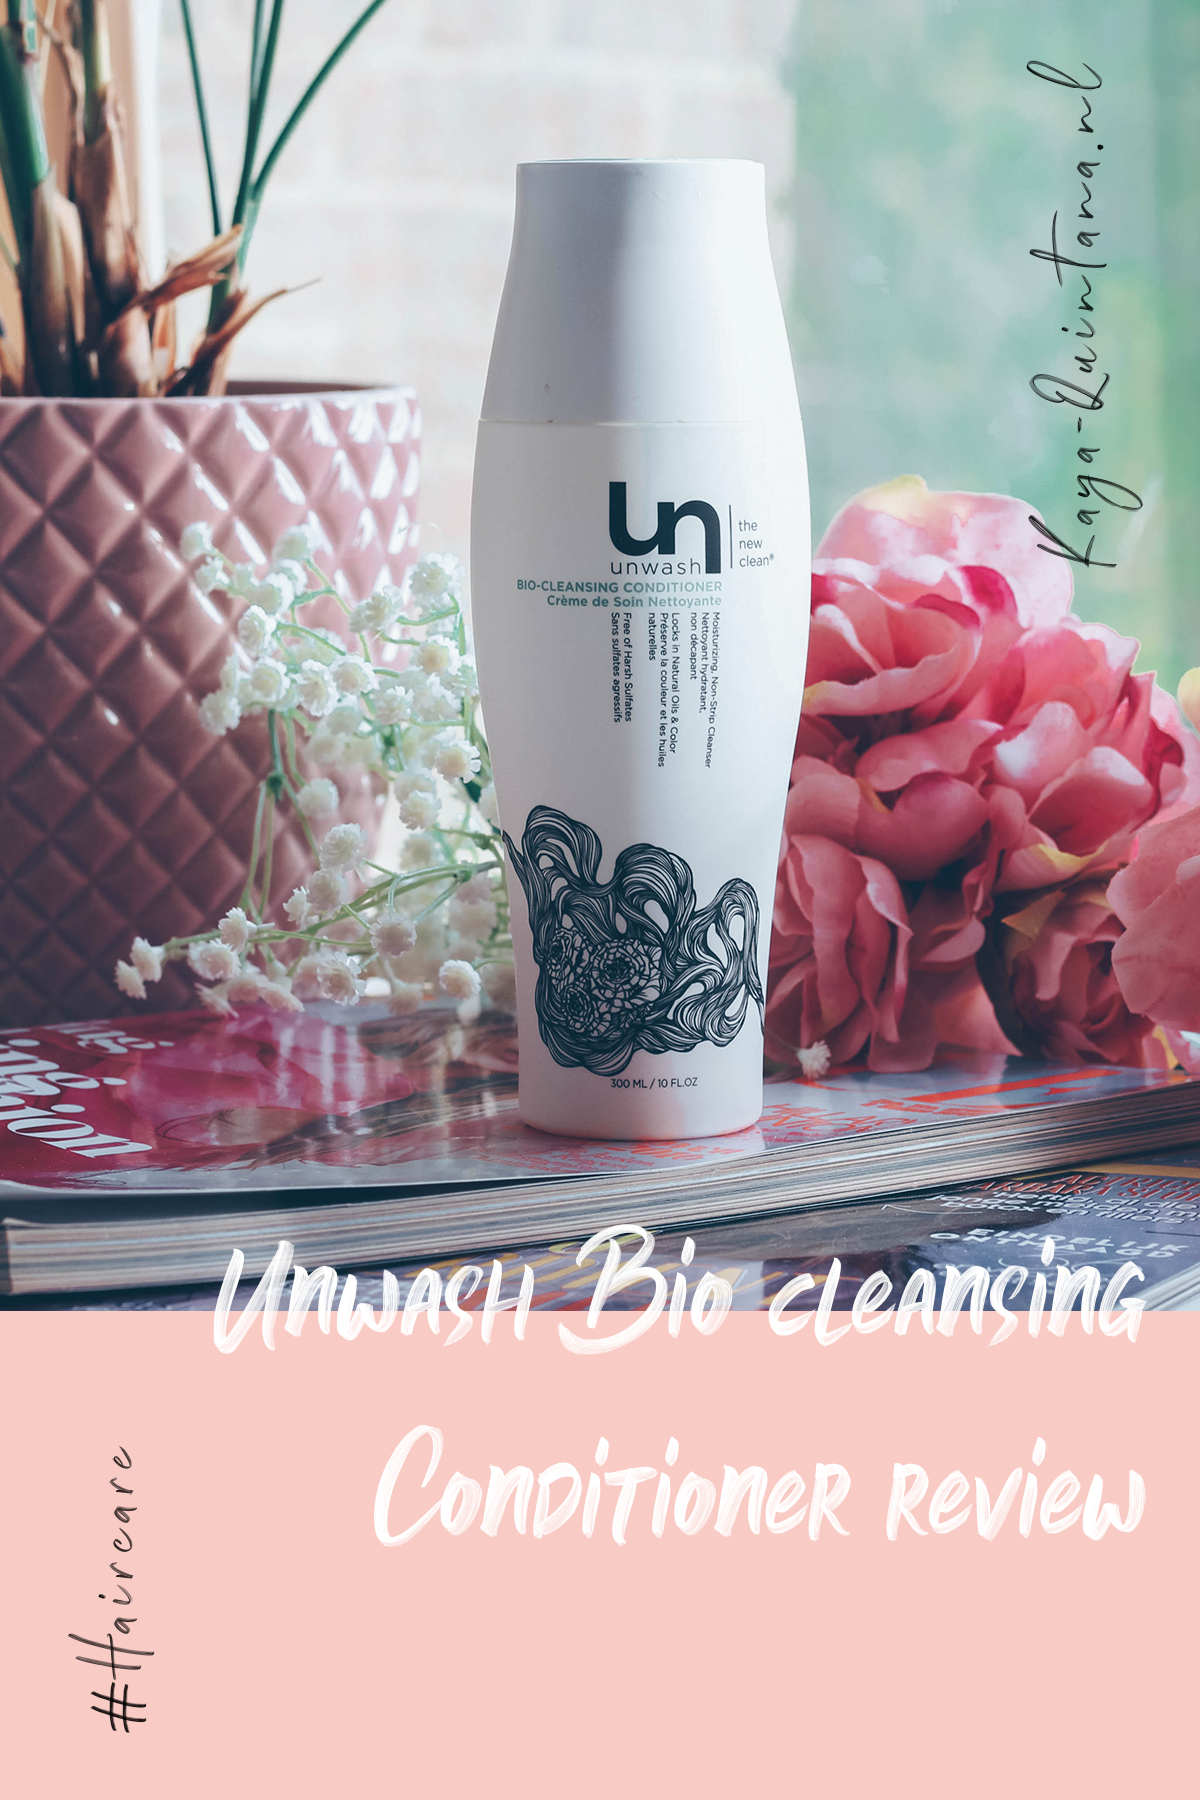 The Unwash bio-cleansing conditioner review